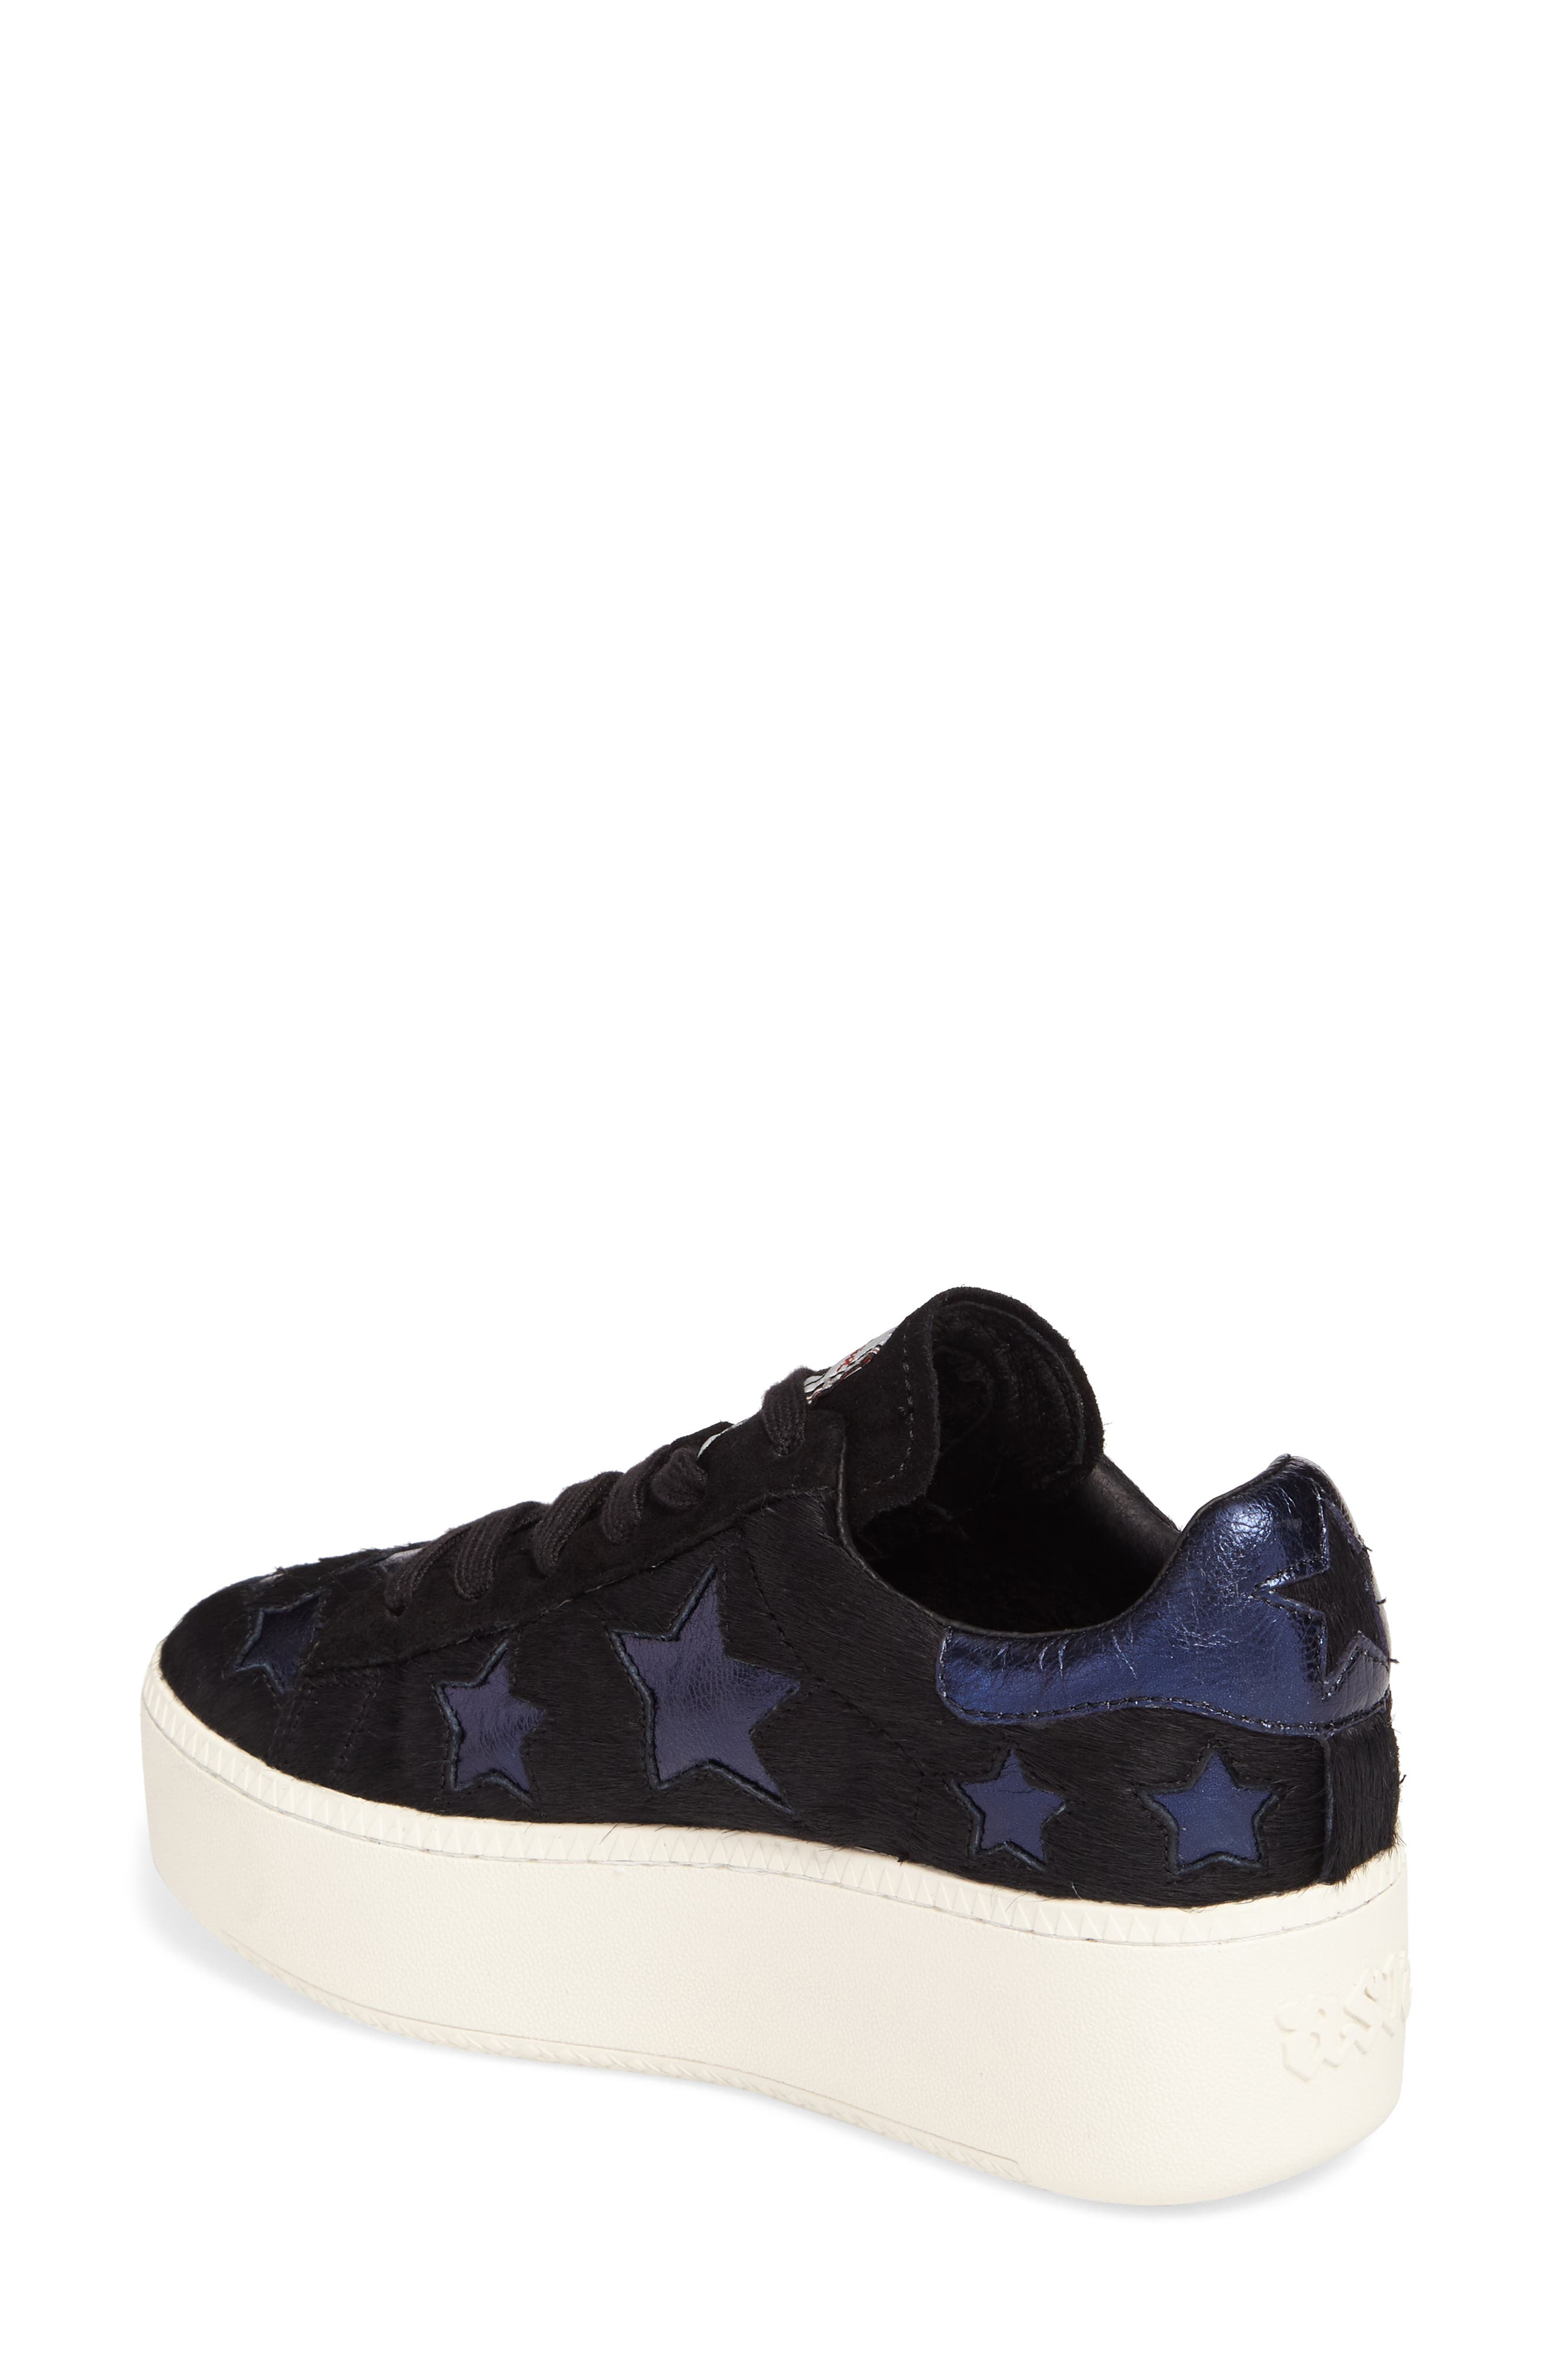 Cult Star Calf Hair Sneaker,                             Alternate thumbnail 2, color,                             001